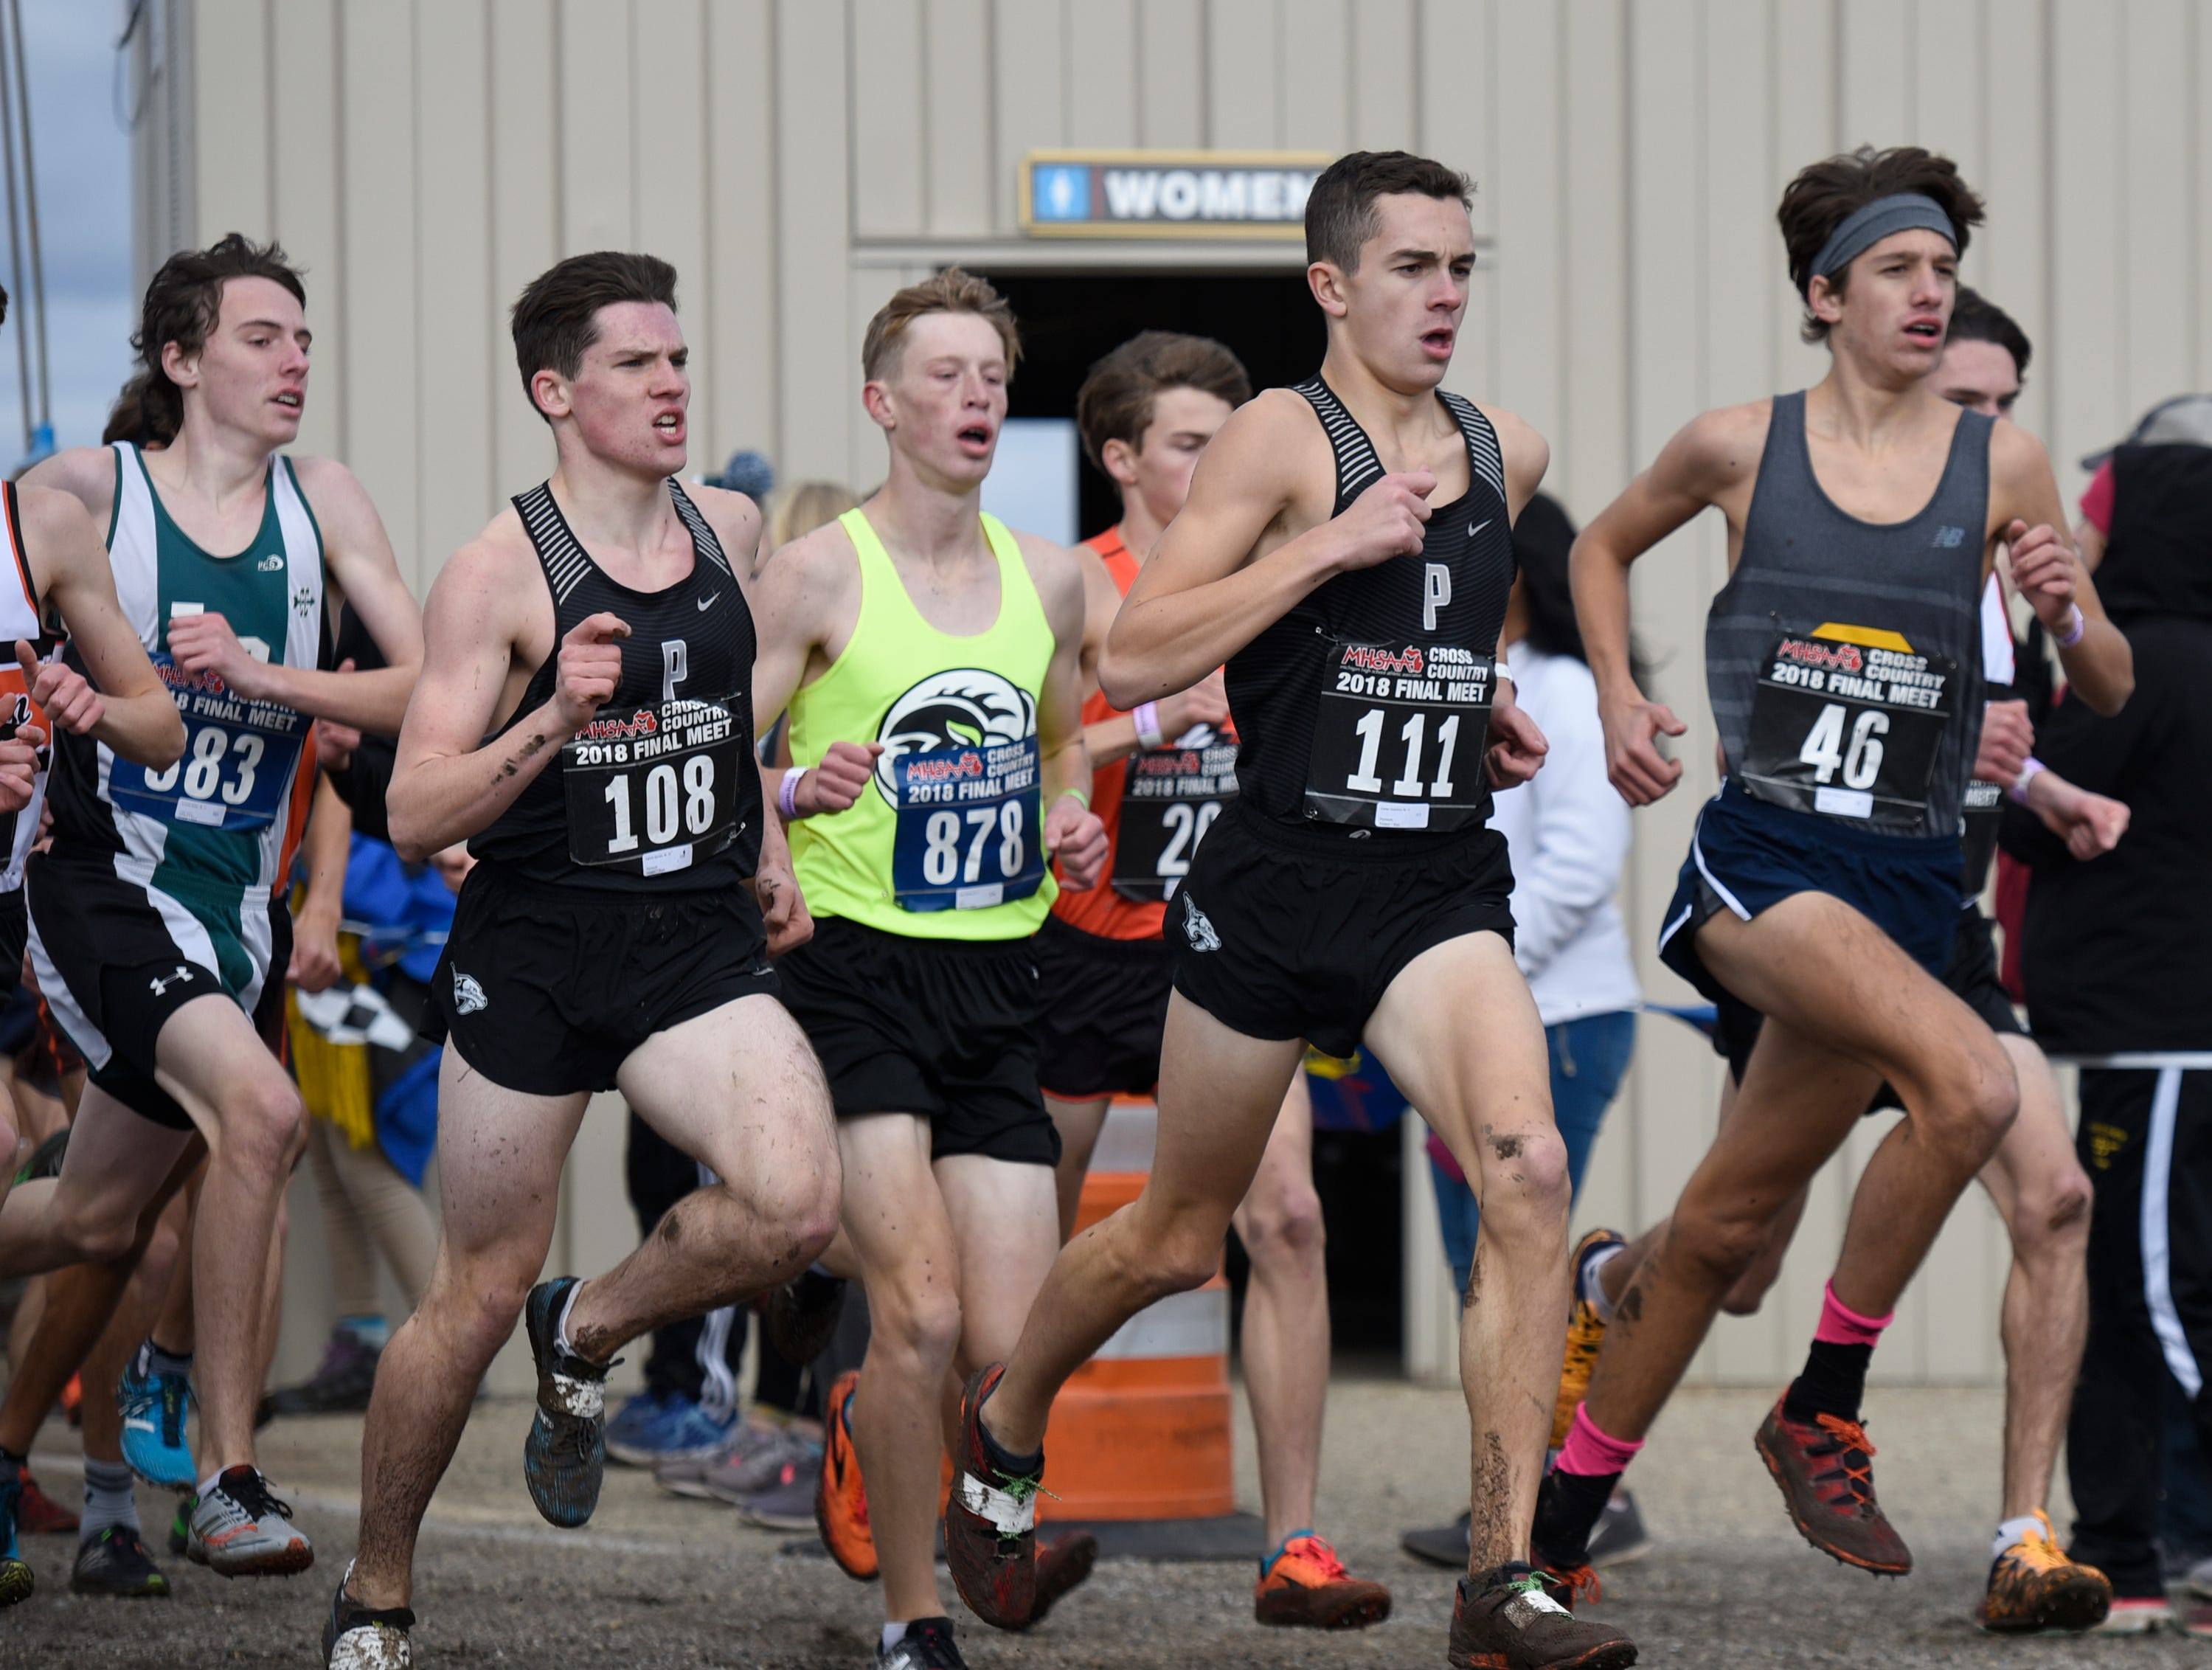 Plymouth's Patrick Barnes Division (108) and Carter Solomon (111) during the Division 1 2018 cross country finals at Michigan International Speedway.